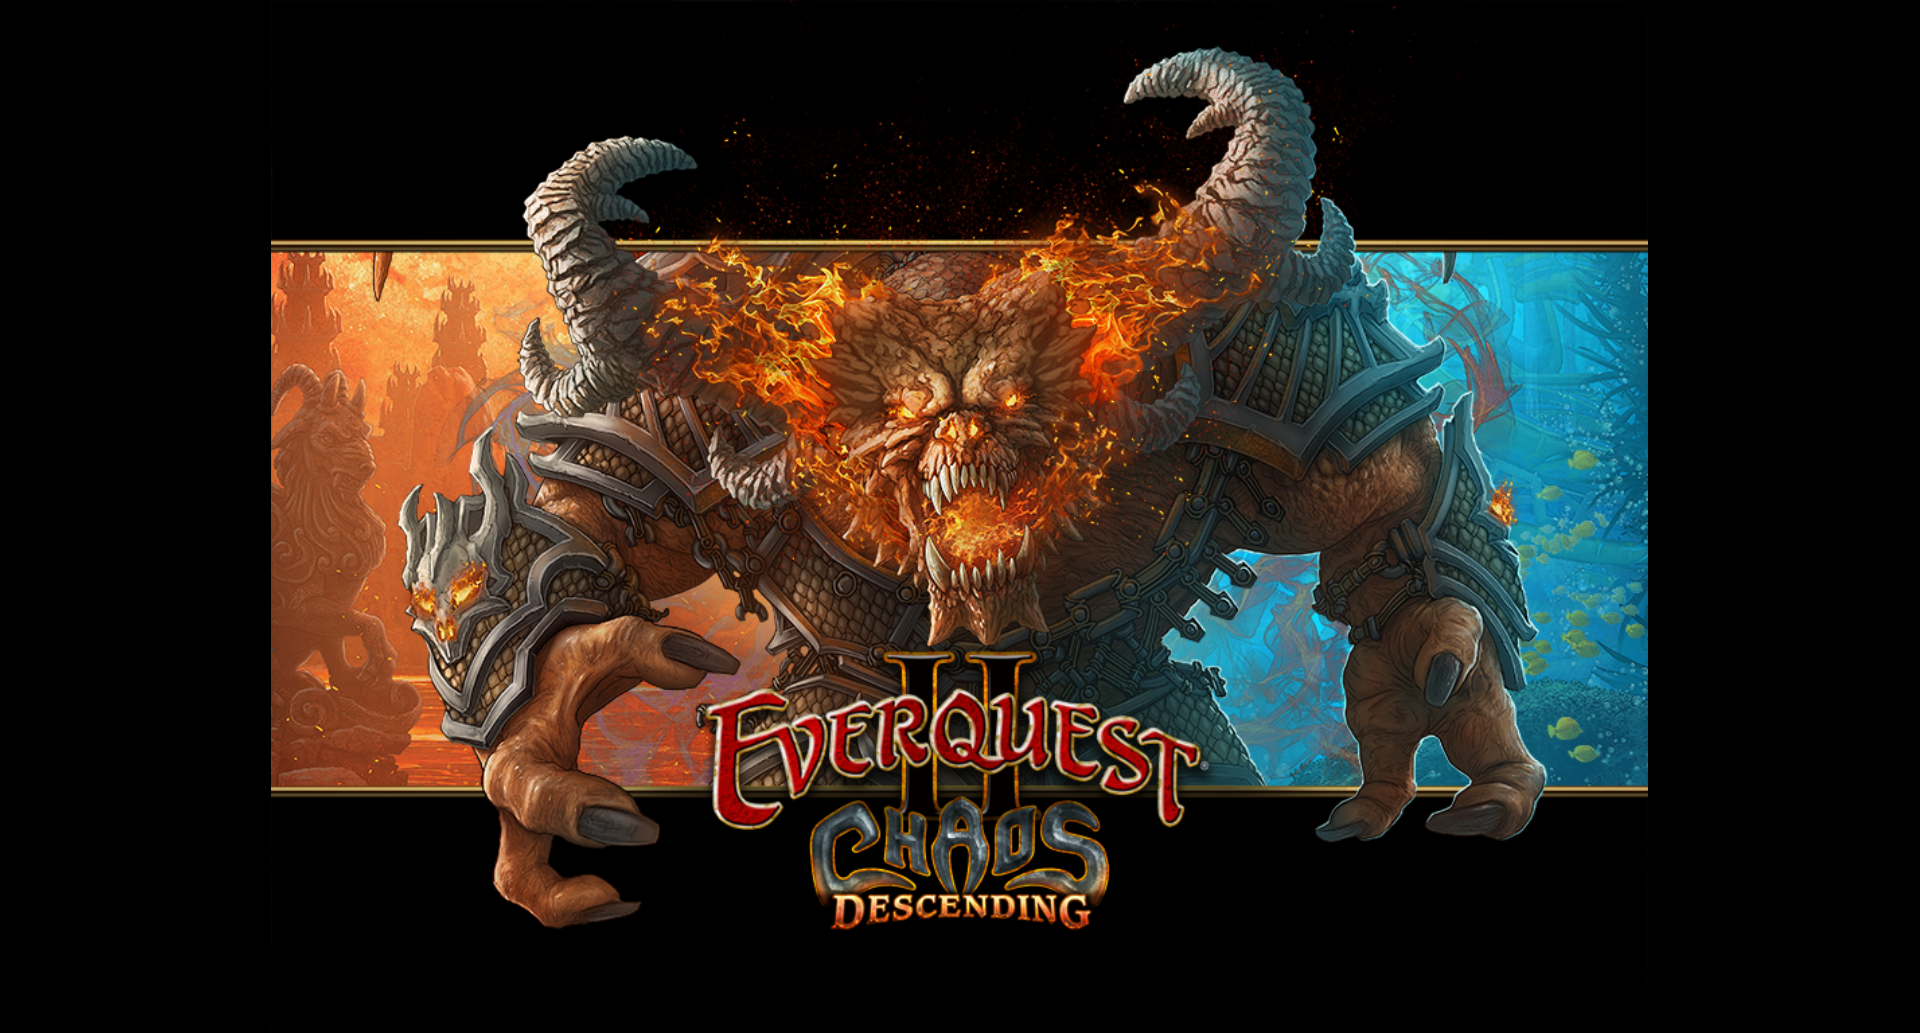 Category:Chaos Descending | EverQuest 2 Wiki | FANDOM